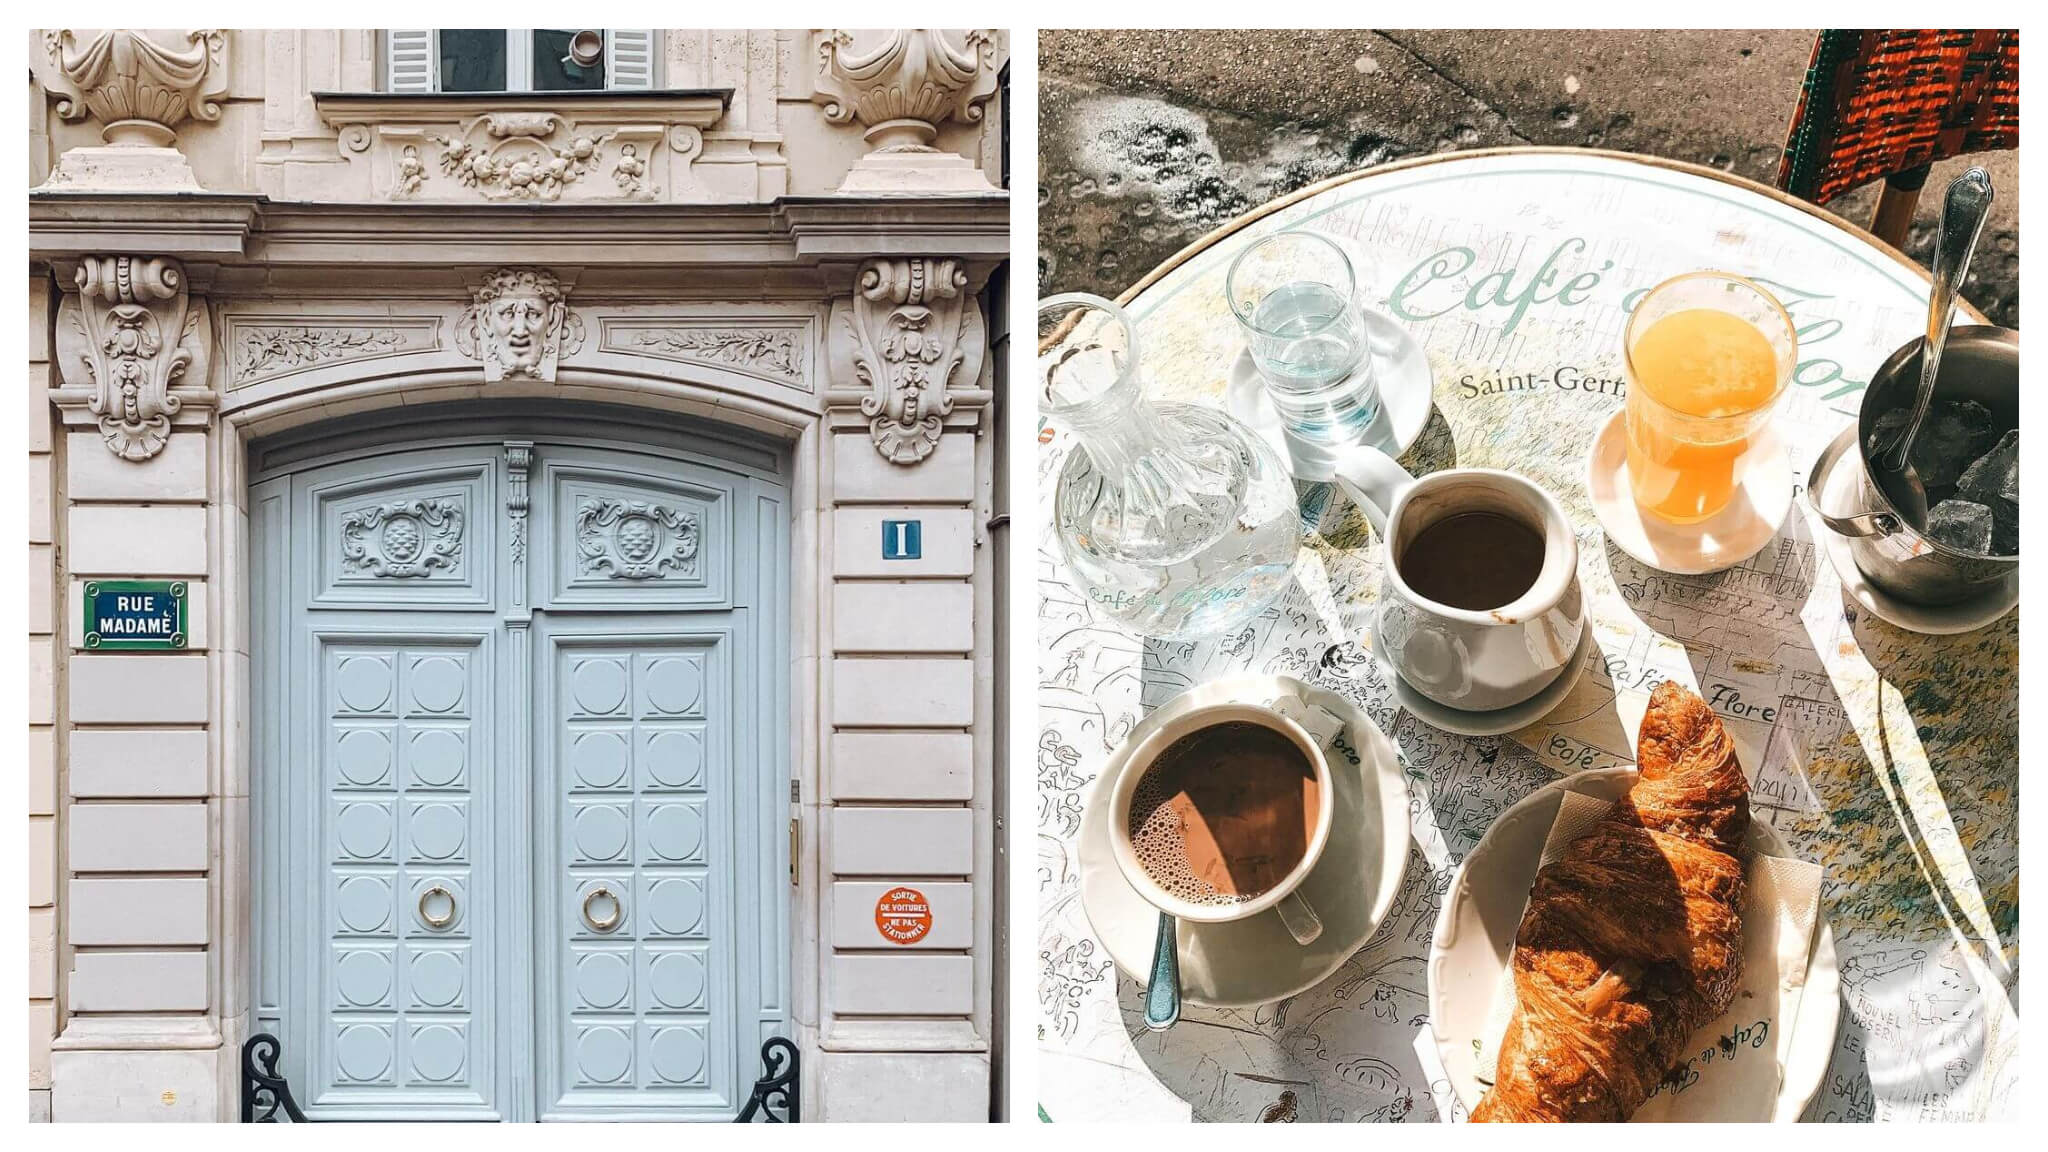 """Left: a sky blue door on an old Parisain building. There are sculptural details above and surrounding the door. There is a blue street sign to the left and a blue number 1 to the right. Right: A table that has the words """"Café de Flore"""" on it with a cup of hot chocolate and a larger carafe of hot chocolate. There is also a glass bottle of water with a glass and another glass of orange juice and a croissant."""